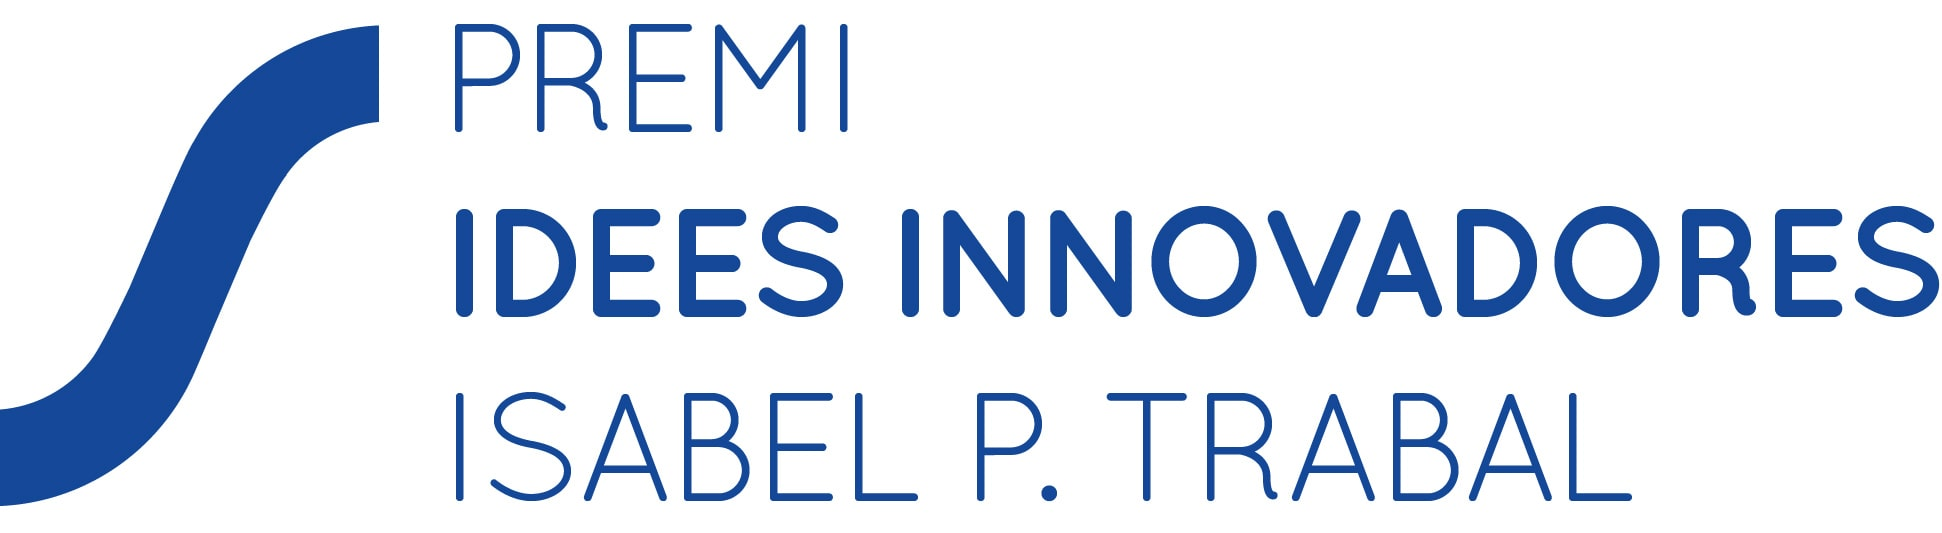 Premi idees innovadores Isabel P. trabal